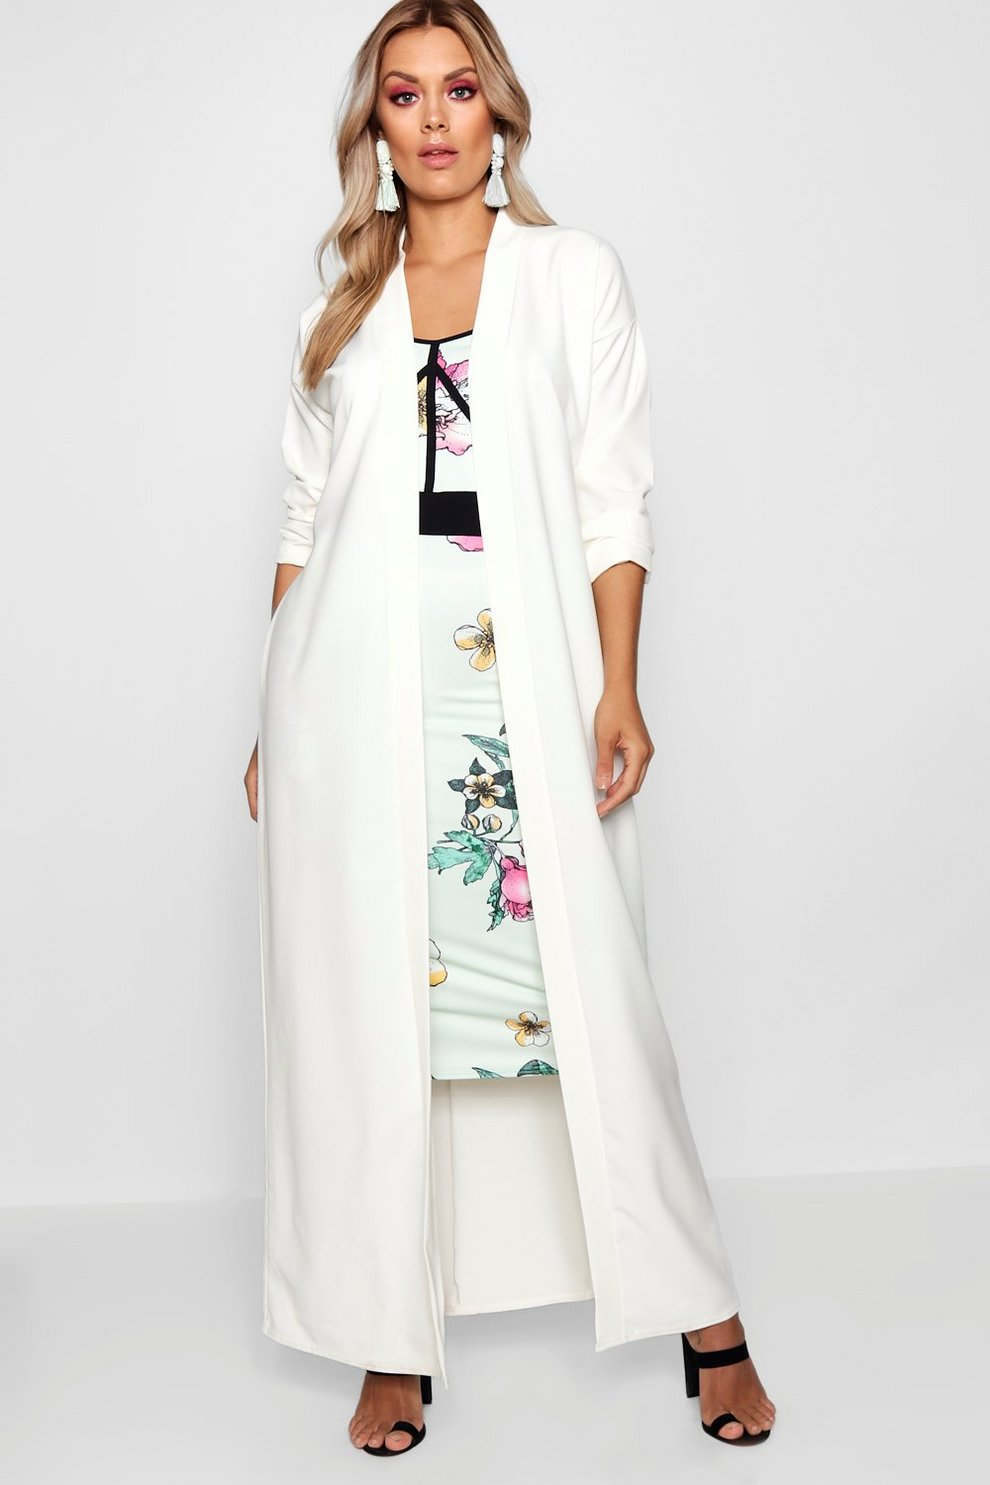 Boohoo Plus Woven Longline Duster Sale Get Authentic 9PX0fr